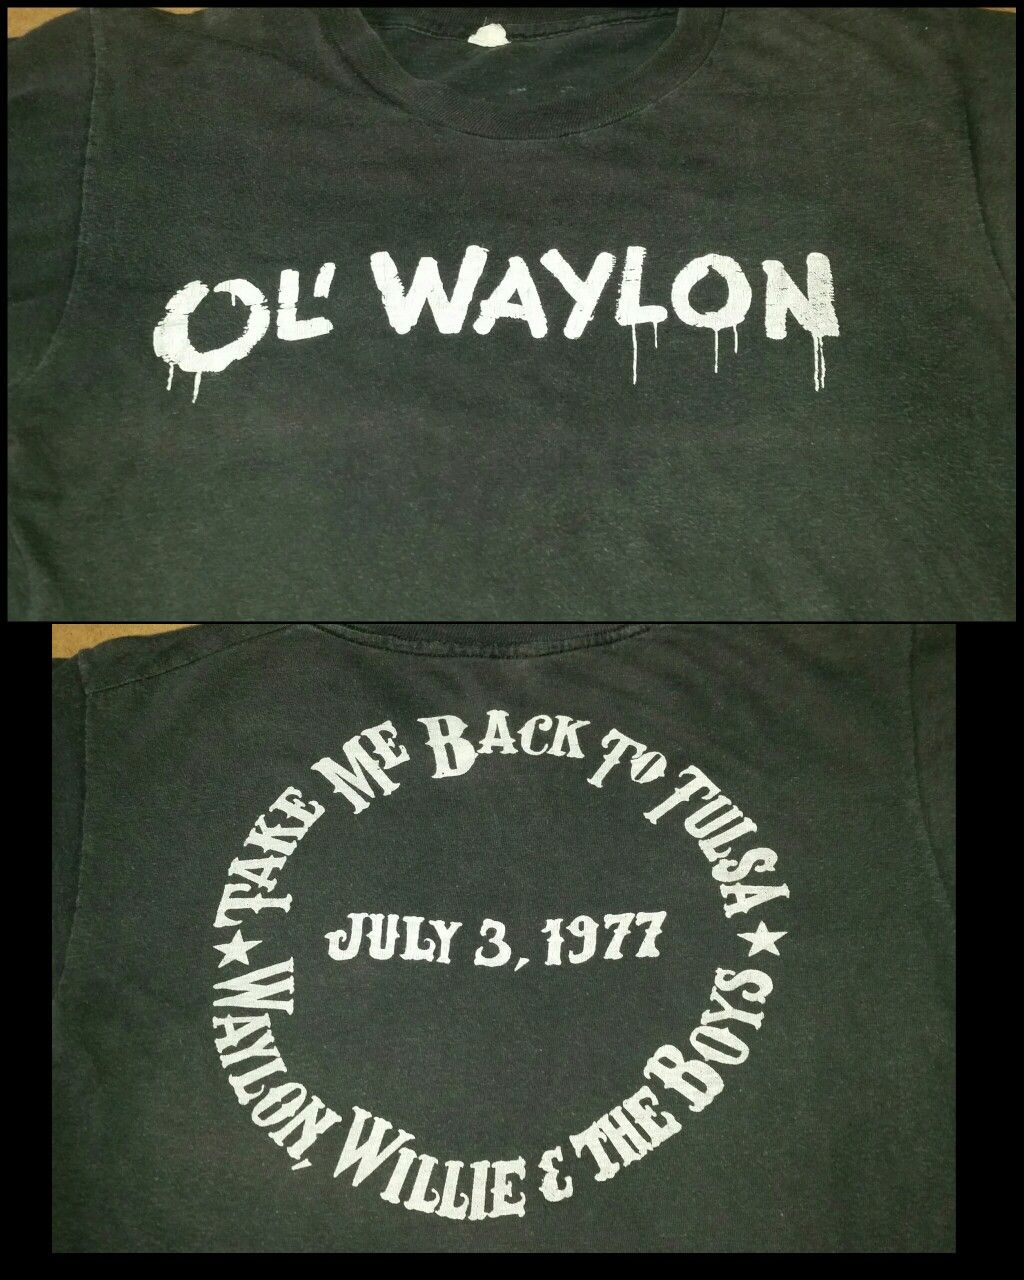 Vintage Waylon Jennings shirt from Willie Nelson's 5th annual picnic July 3, 1977. One of the coolest shirts I've ever seen.